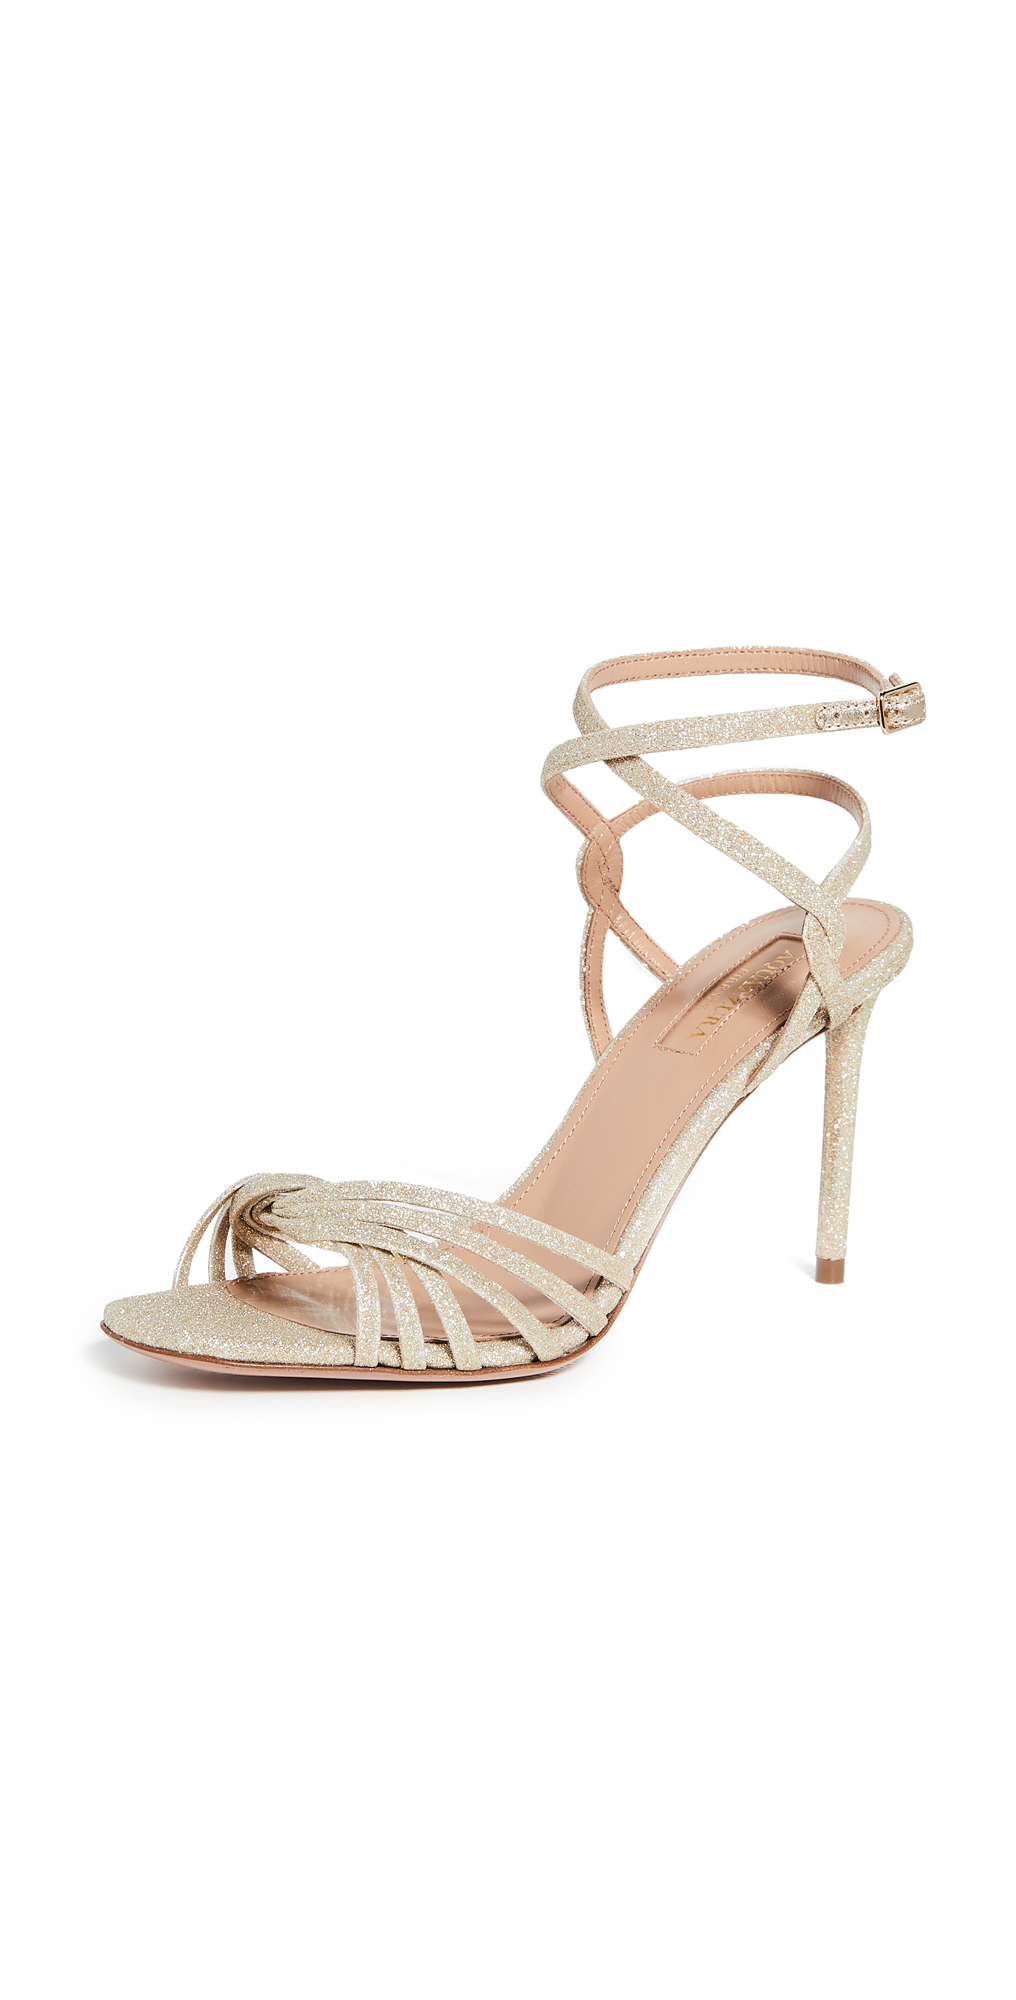 Aquazzura 85mm May Sandals